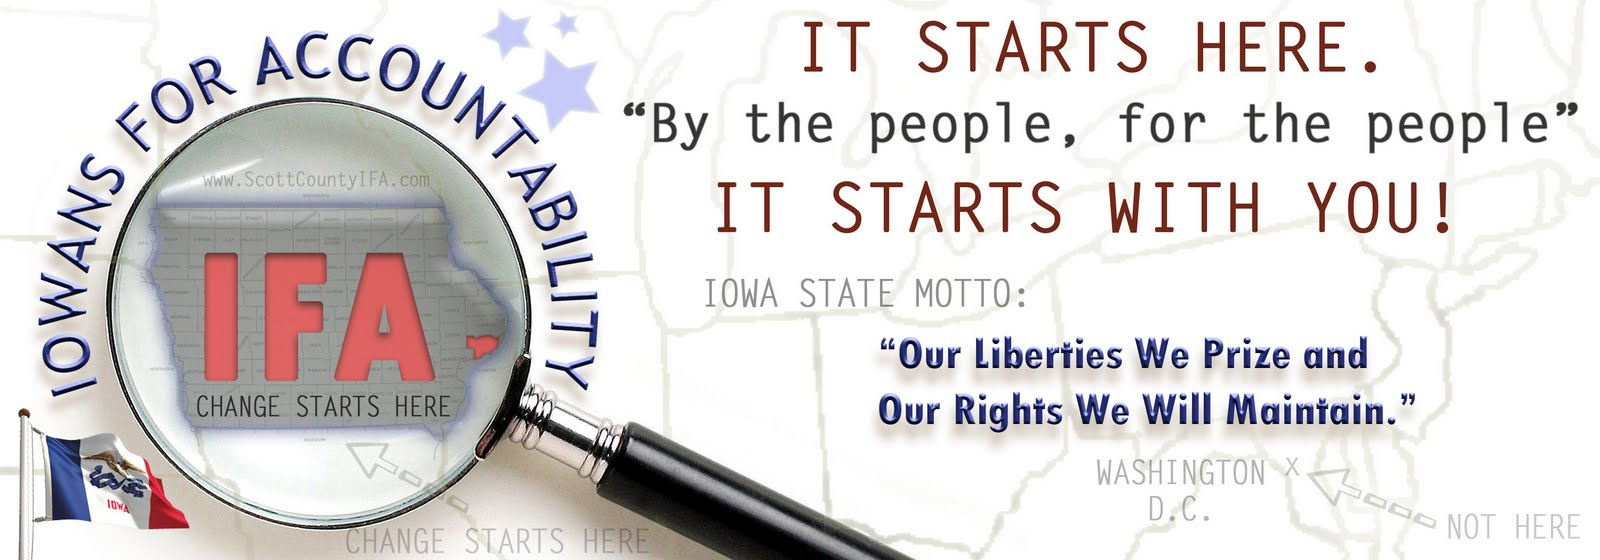 Iowans For Accountability | Scott County IFA